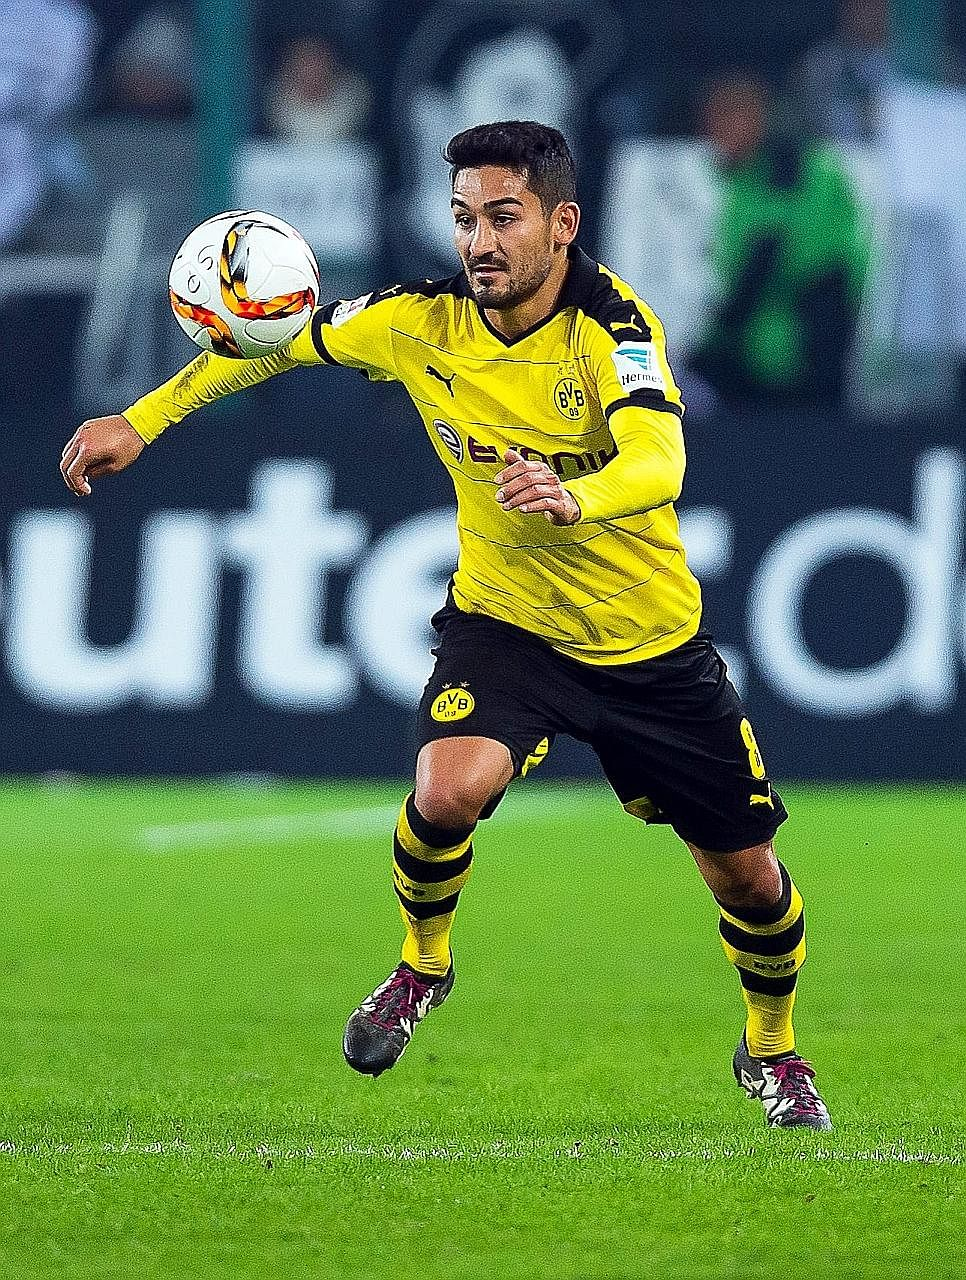 Ilkay Gundogan in action during a German Bundesliga match in January. The midfielder dislocated a knee cap in early May but Manchester City say he is recovering well from the injury.